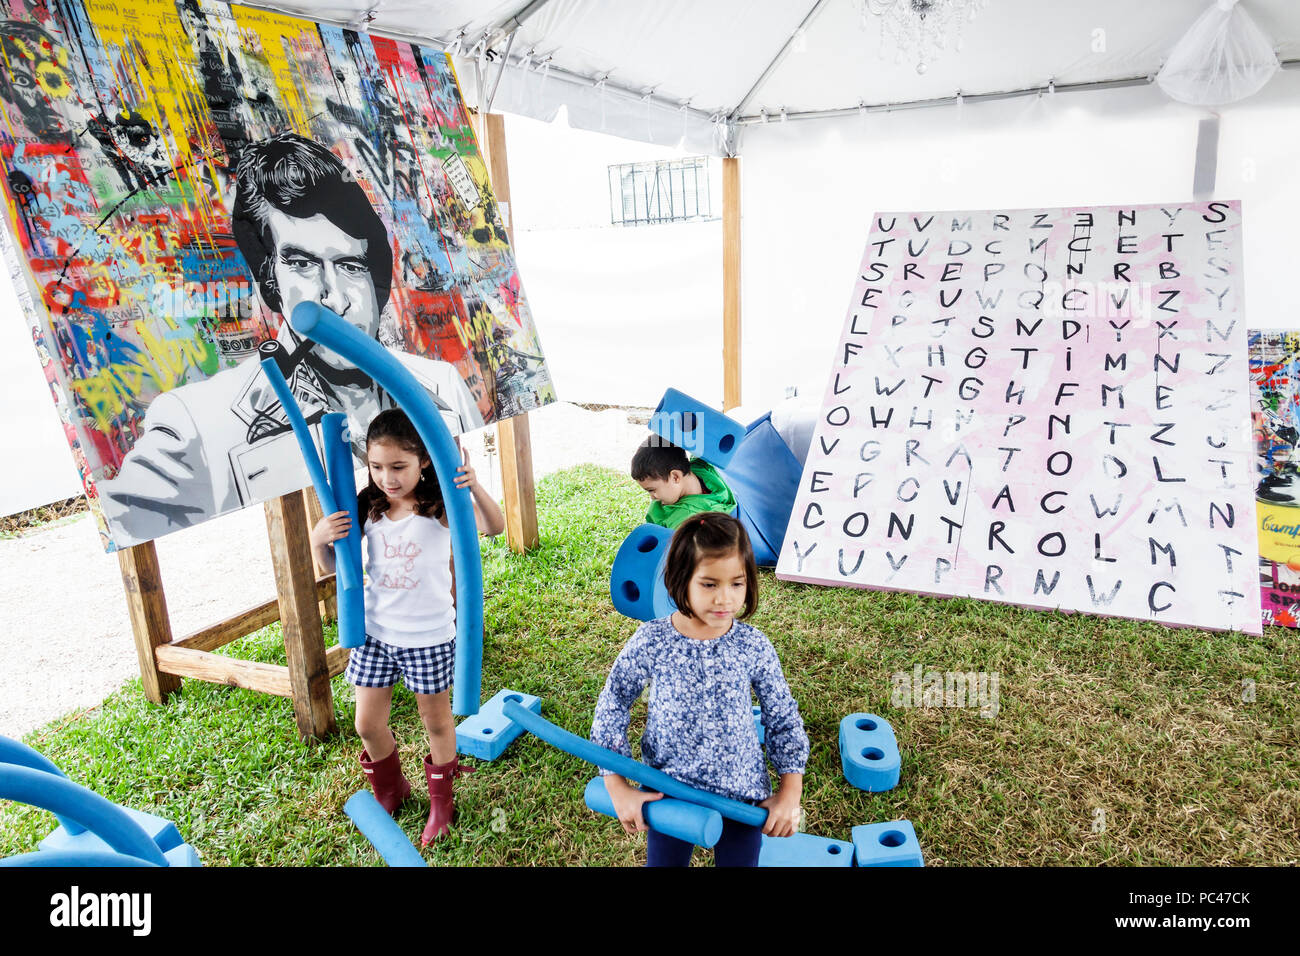 Miami Florida Wynwood Art Basel Week Mex/Art 2017 Mexican Contemporary Art Exhibition painting foam forms girl boy child playing - Stock Image